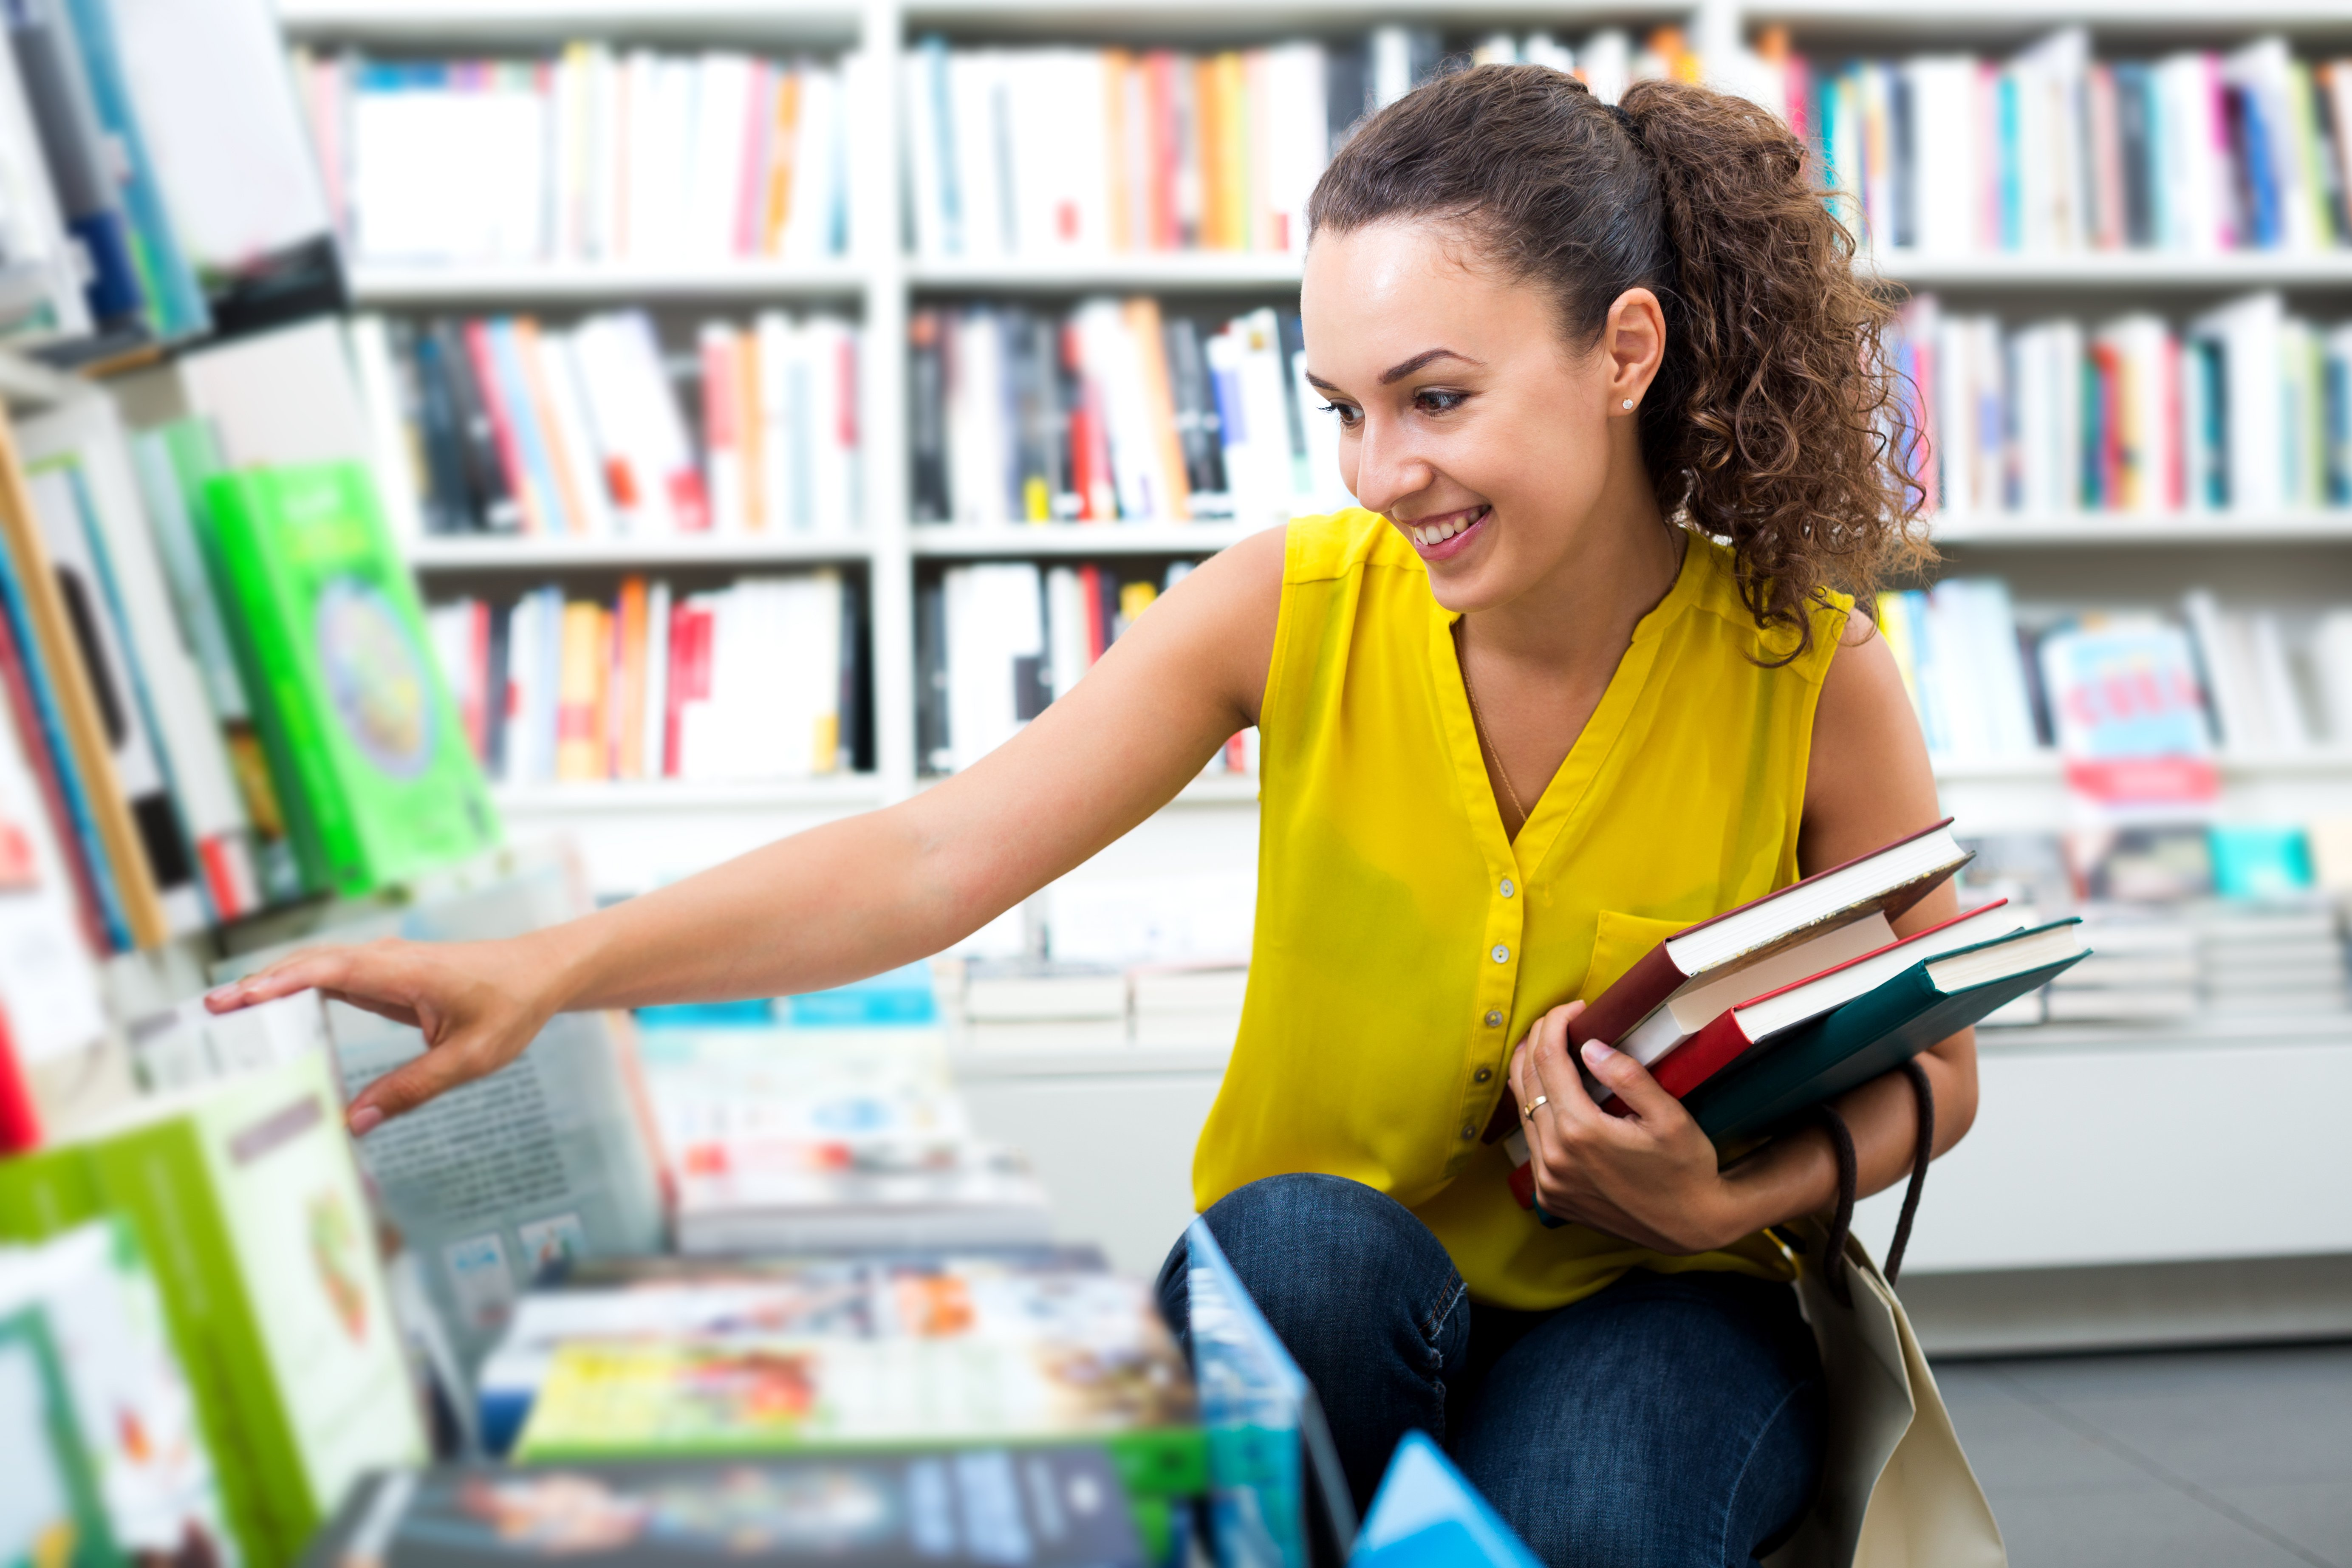 A woman in a yellow top and blue jeans holds a few books and crouches down to look at more books in a bookshop